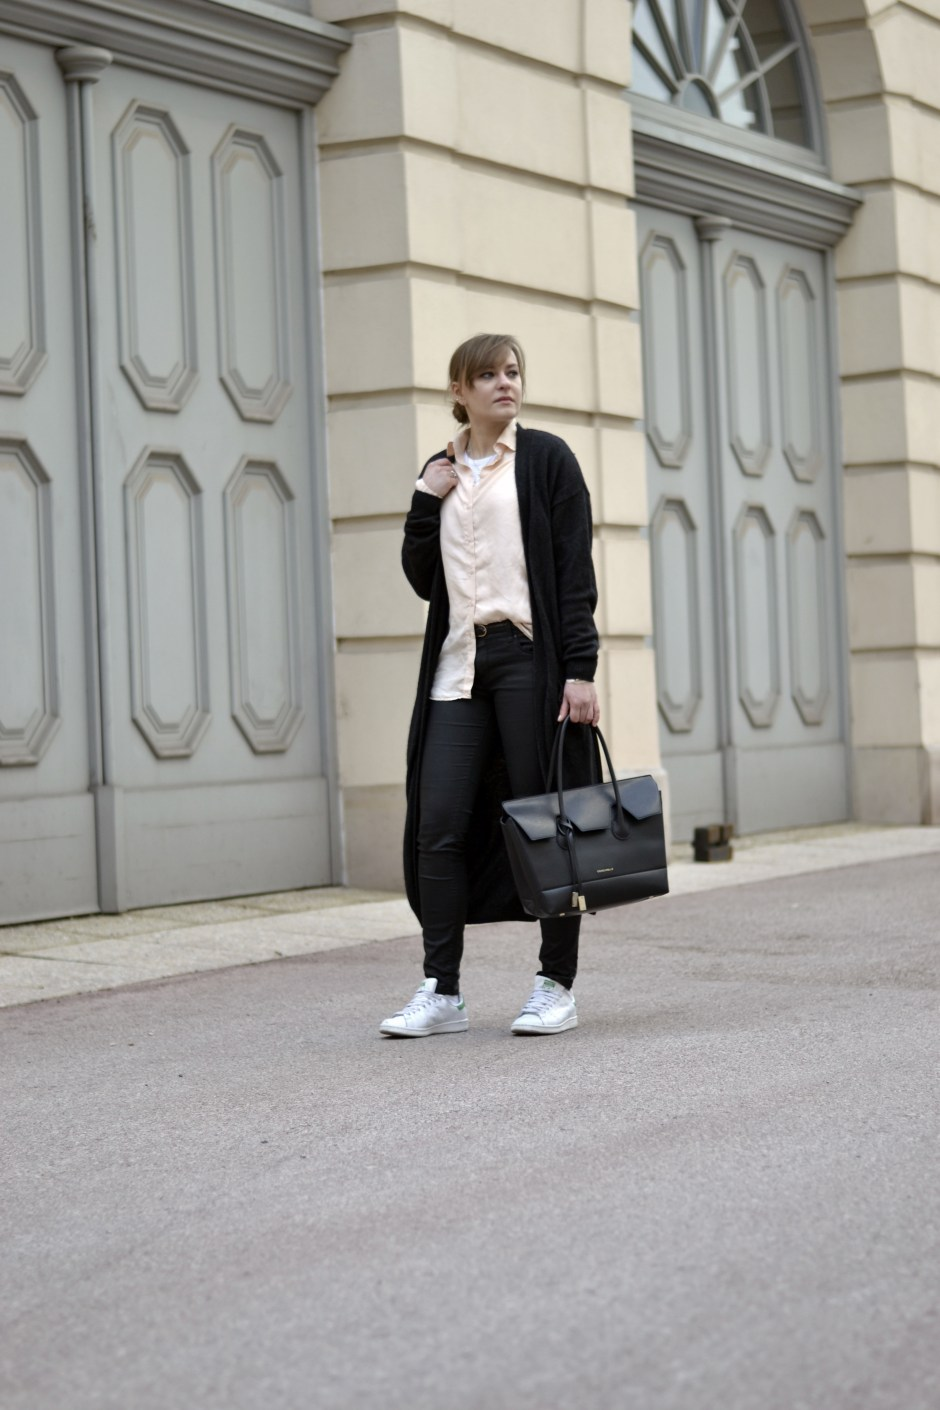 langer cardigan style sandbox fashion blog style outfit streetstyle mode oversized bluse weekday selected femme coccinelle shopper adidas stan smith wien vienna modeblog österreich austria fashion